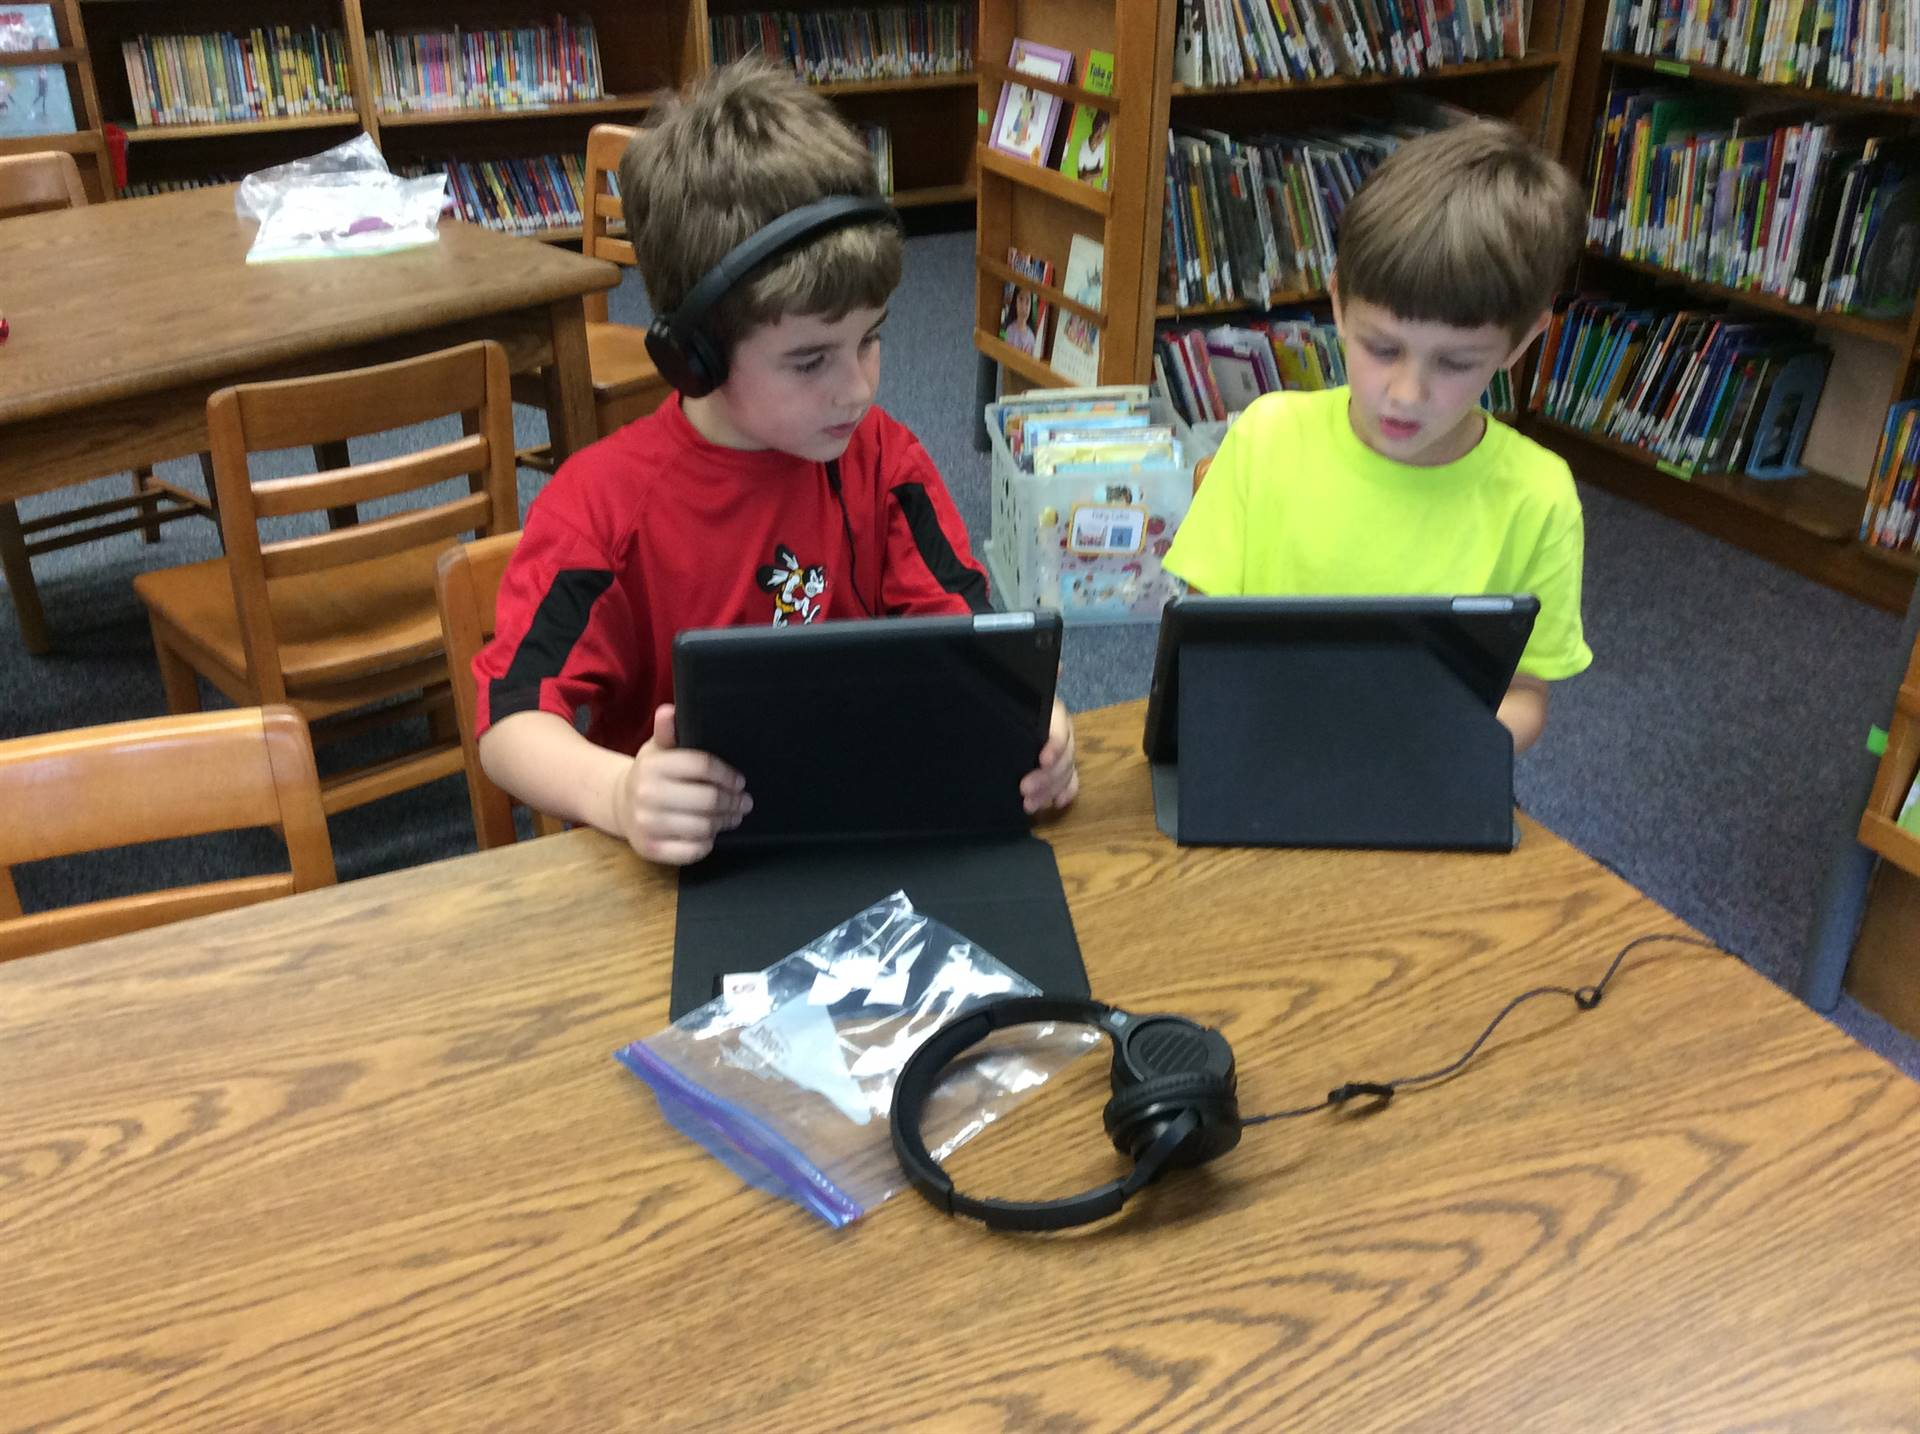 Learning in the Media Center